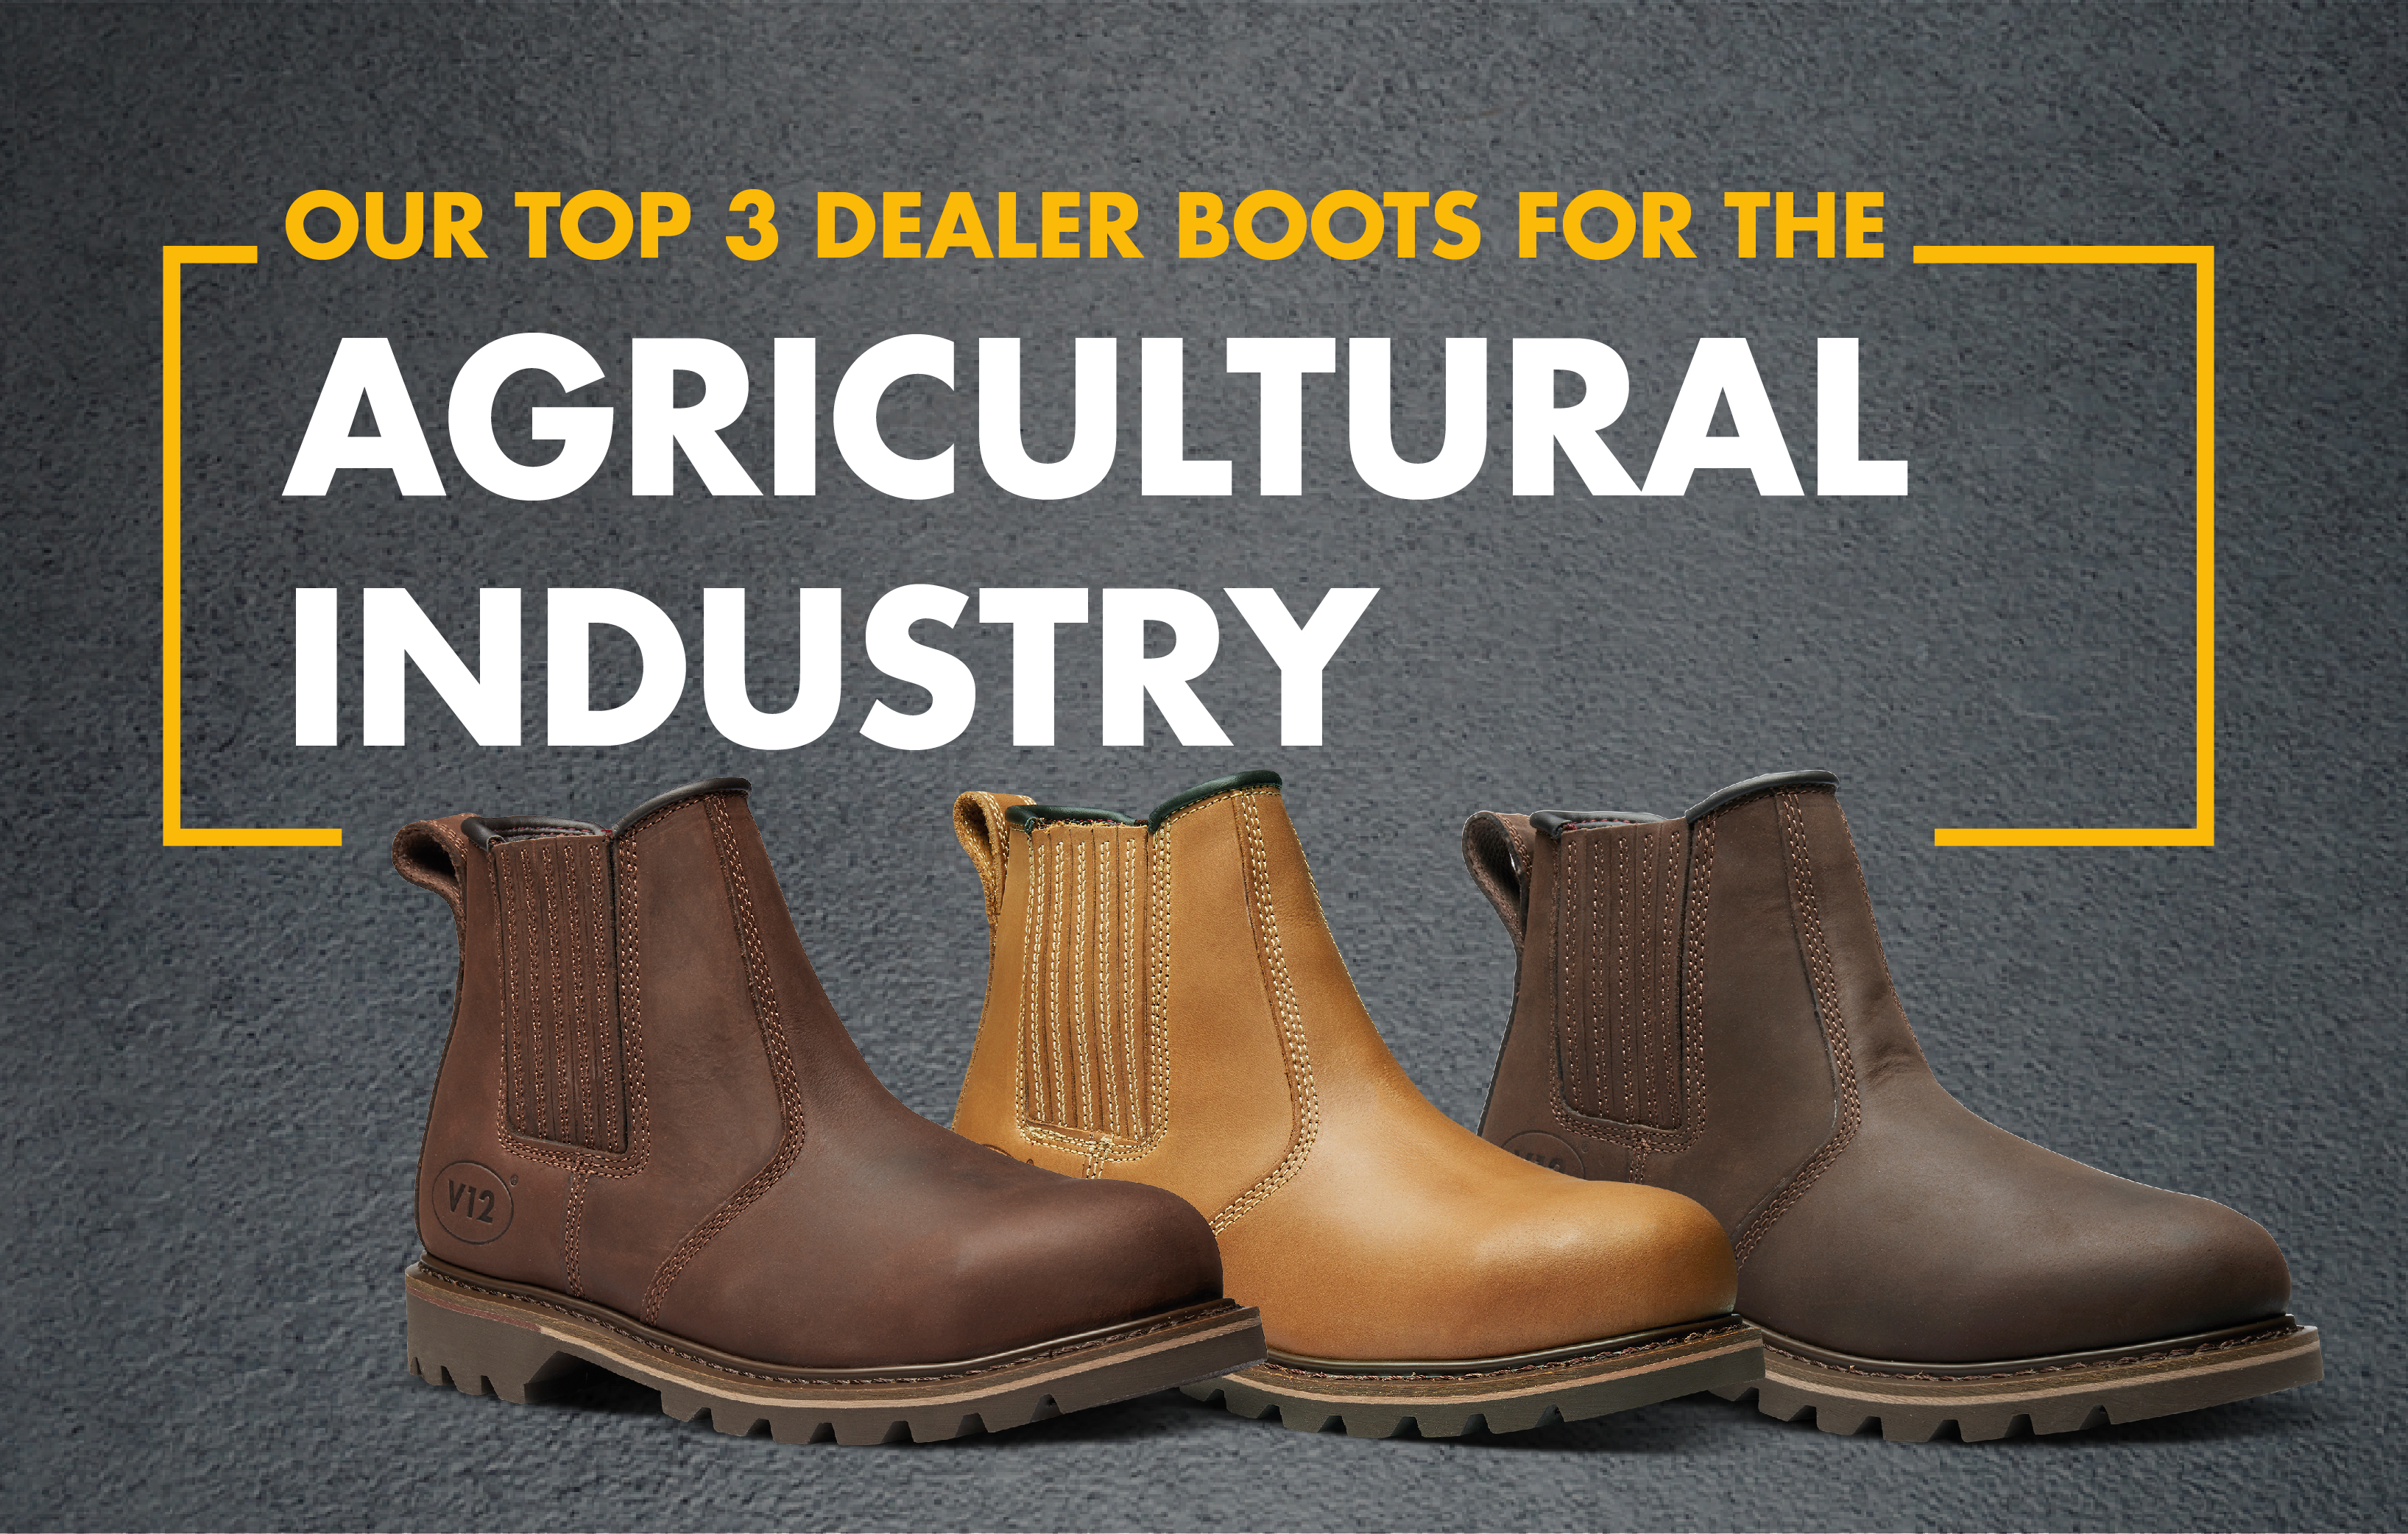 Our top 3 dealer boots for the Agriculture industry |v12 footwear